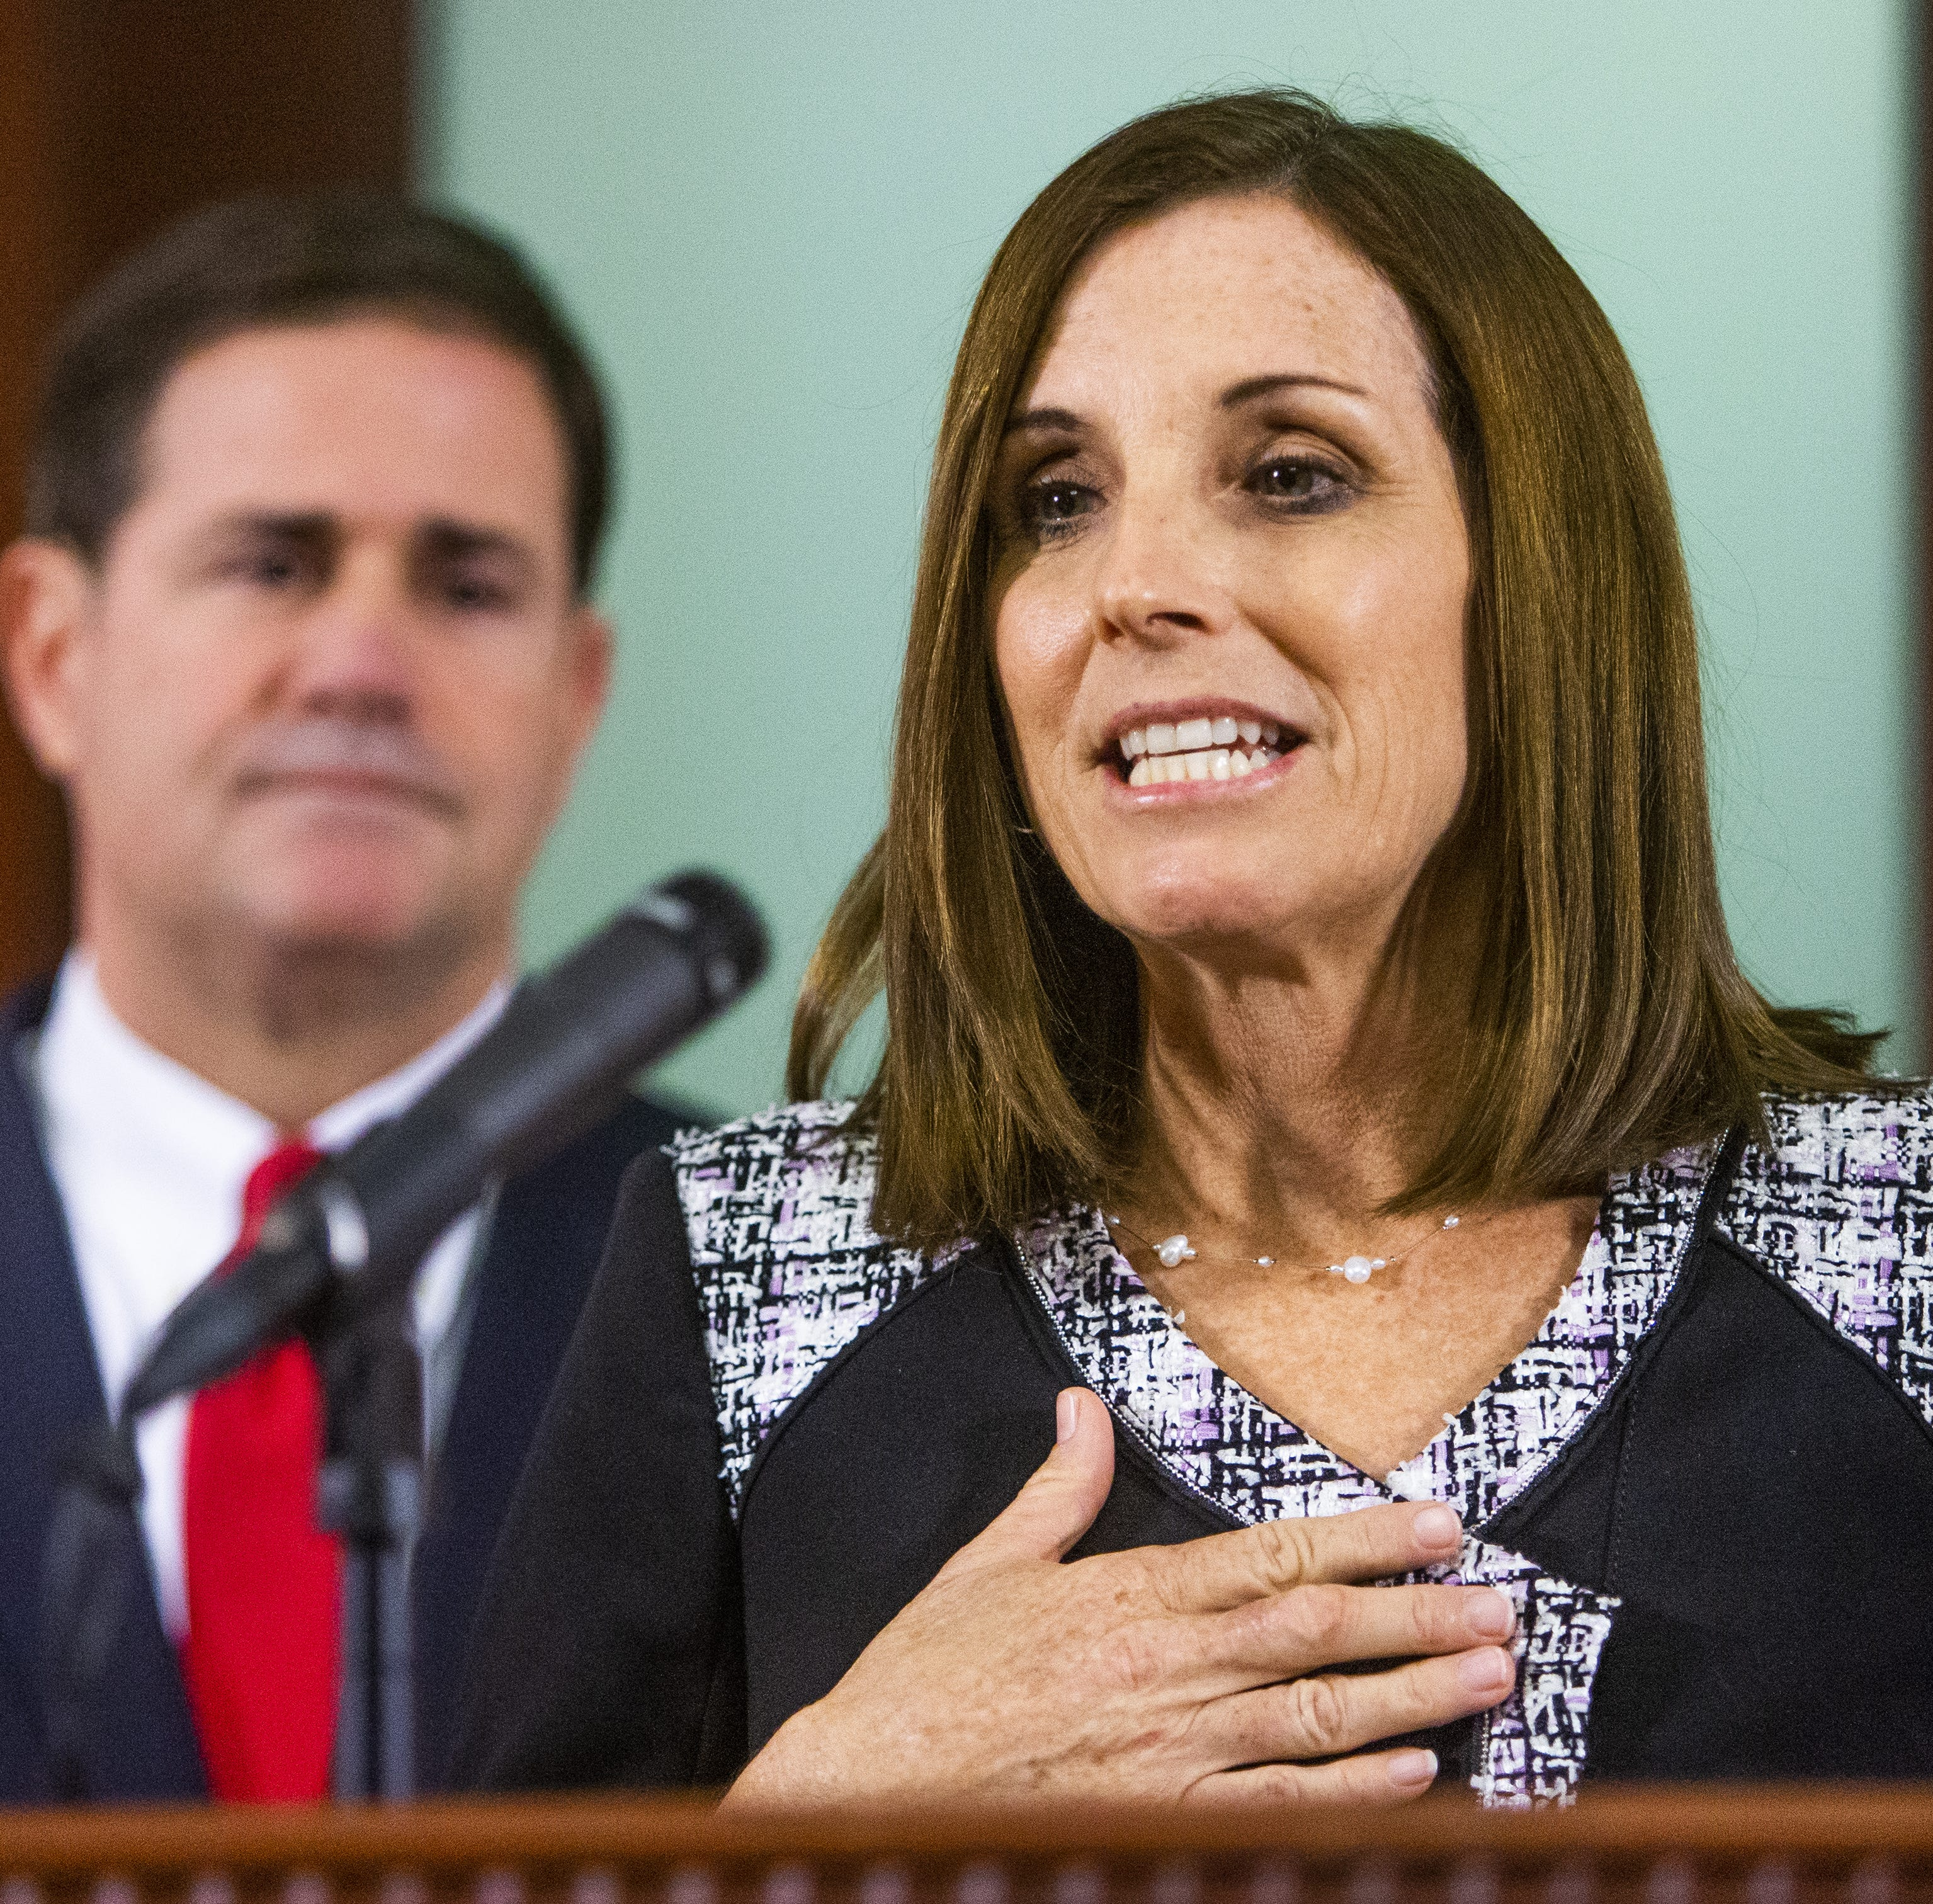 How John McCain's family reacted to Martha McSally's appointment to U.S. Senate